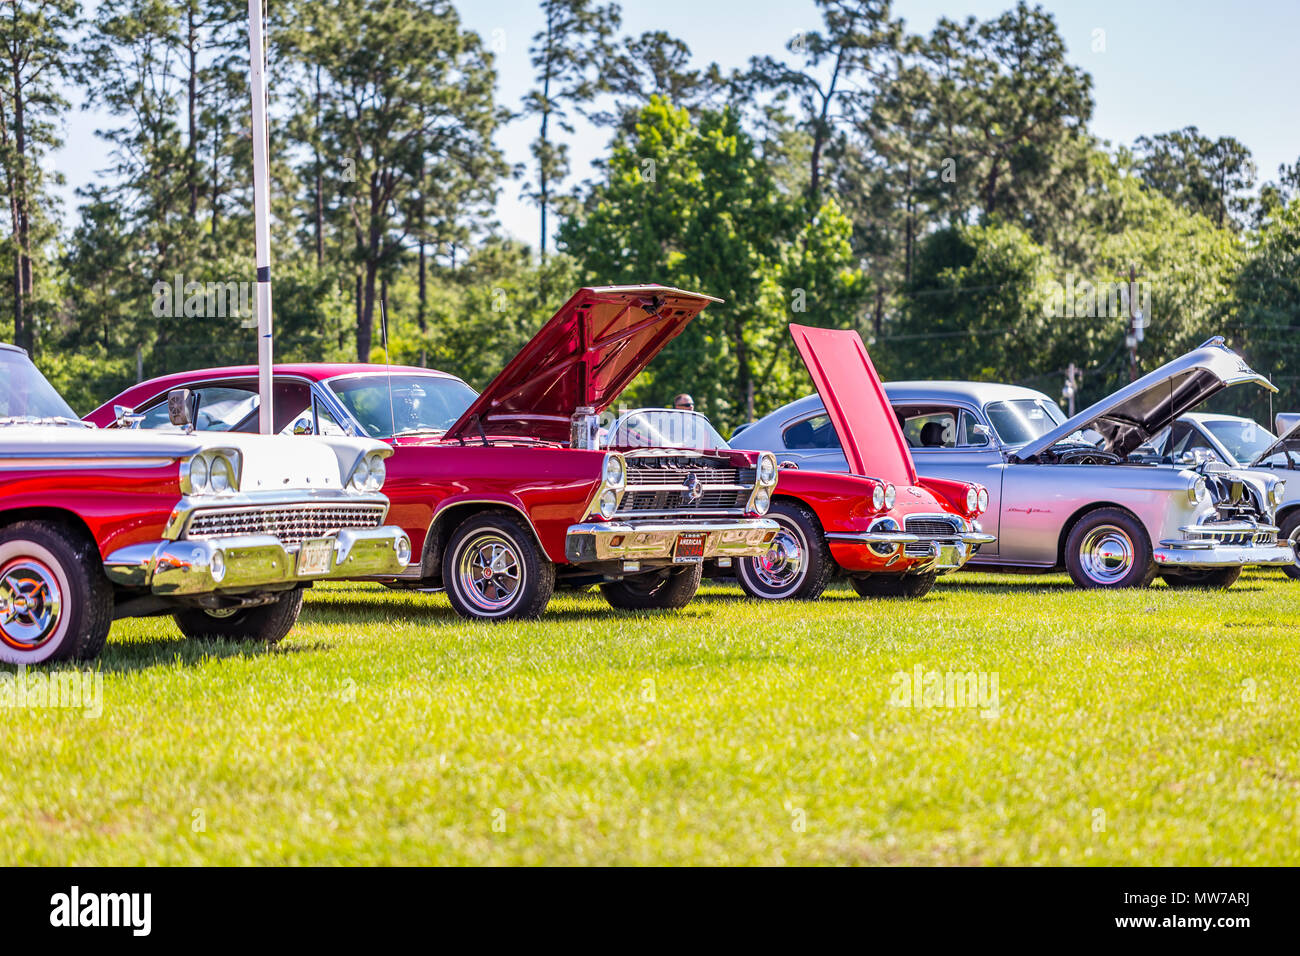 1959 Ford Galaxie Skyliner, 1966 Ford Fairlane Hardtop, 1962